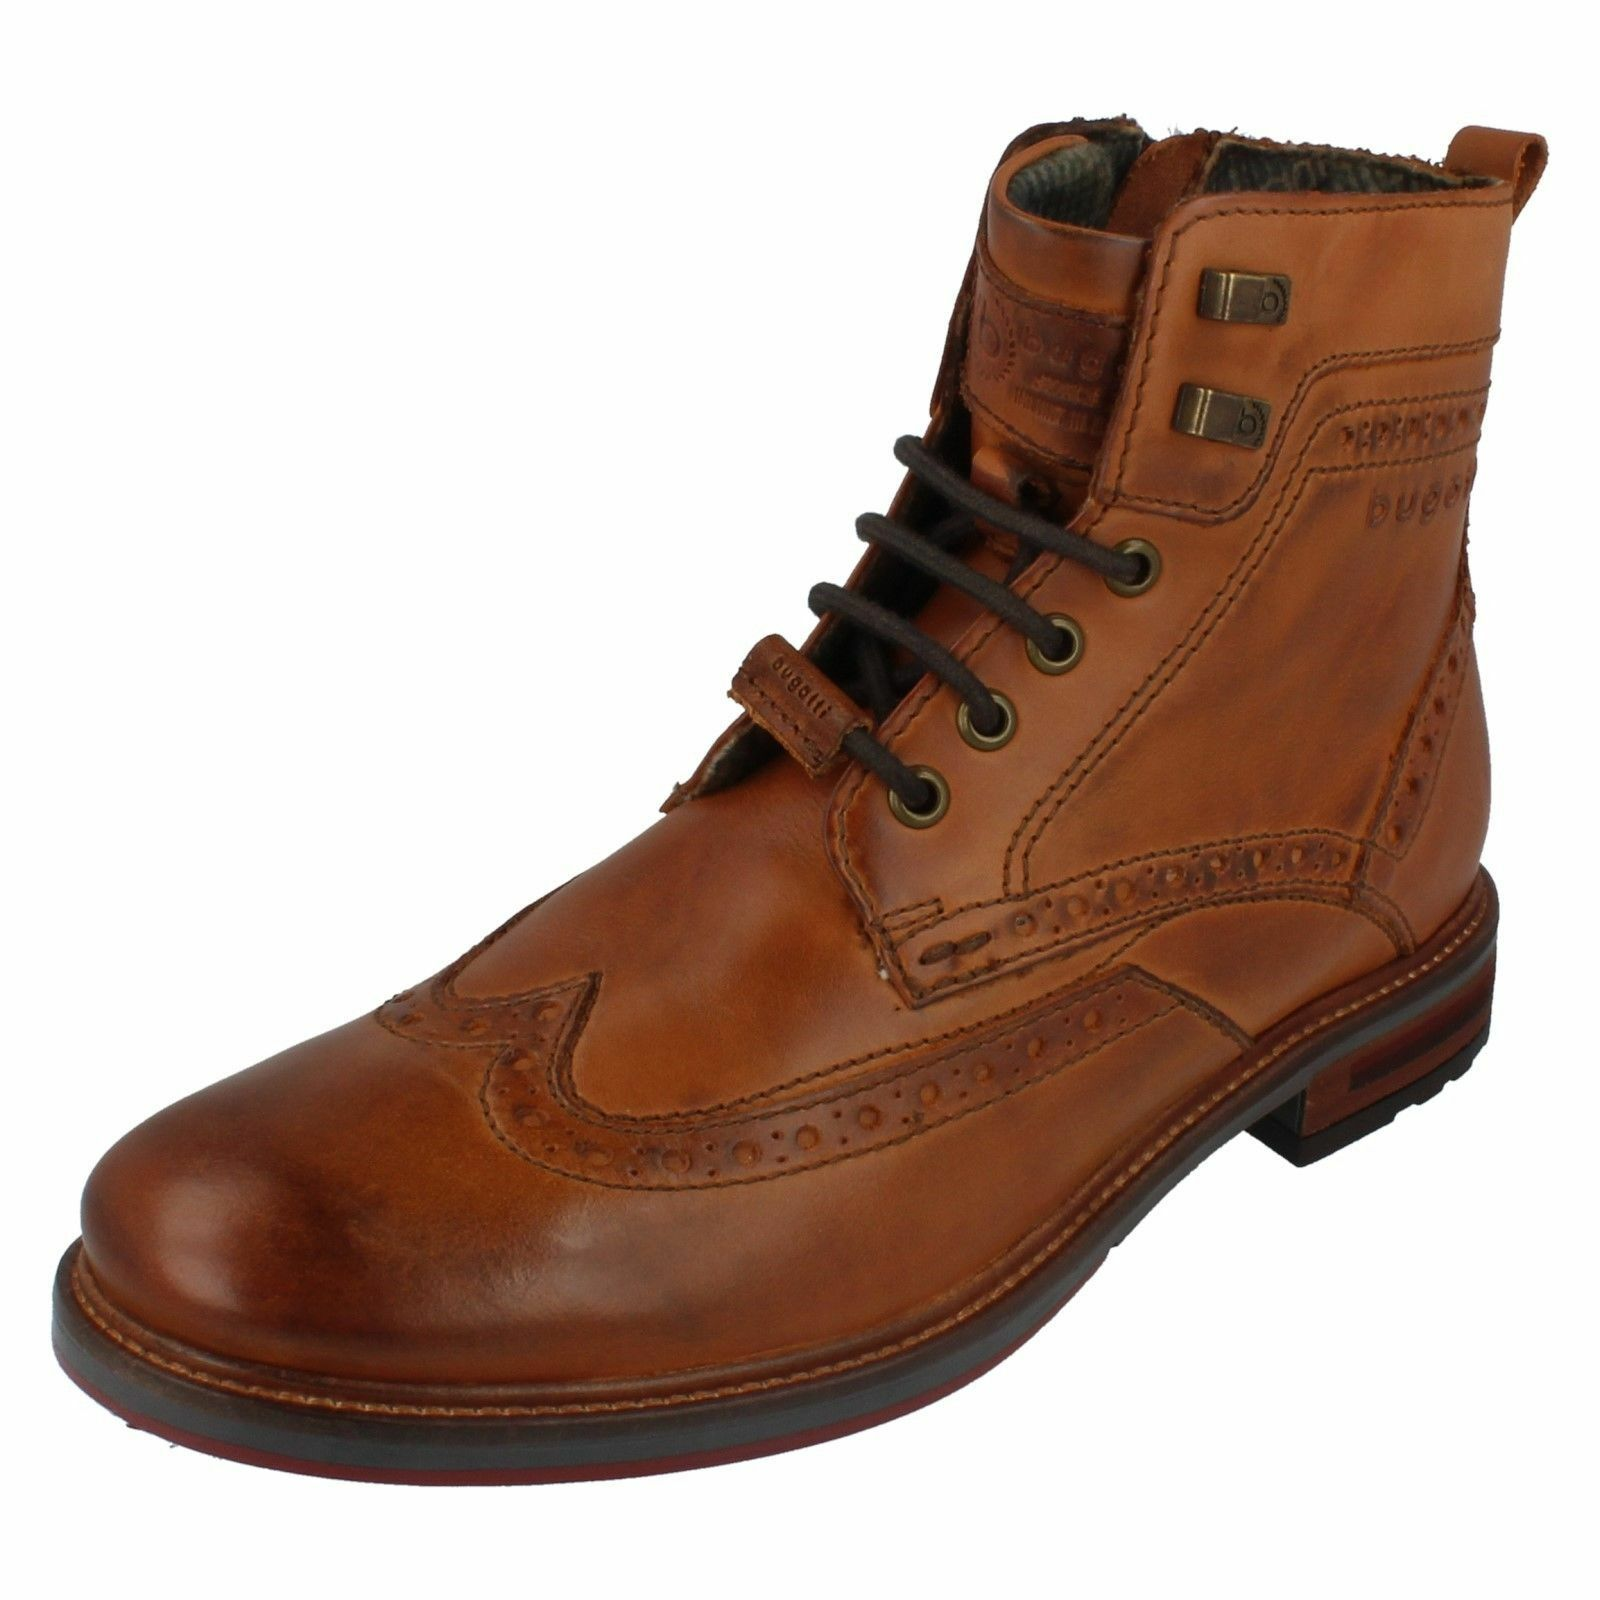 Ankle Herren 311-37737-1100 Leder Lace Up Ankle  Stiefel by Bugatti e5a015